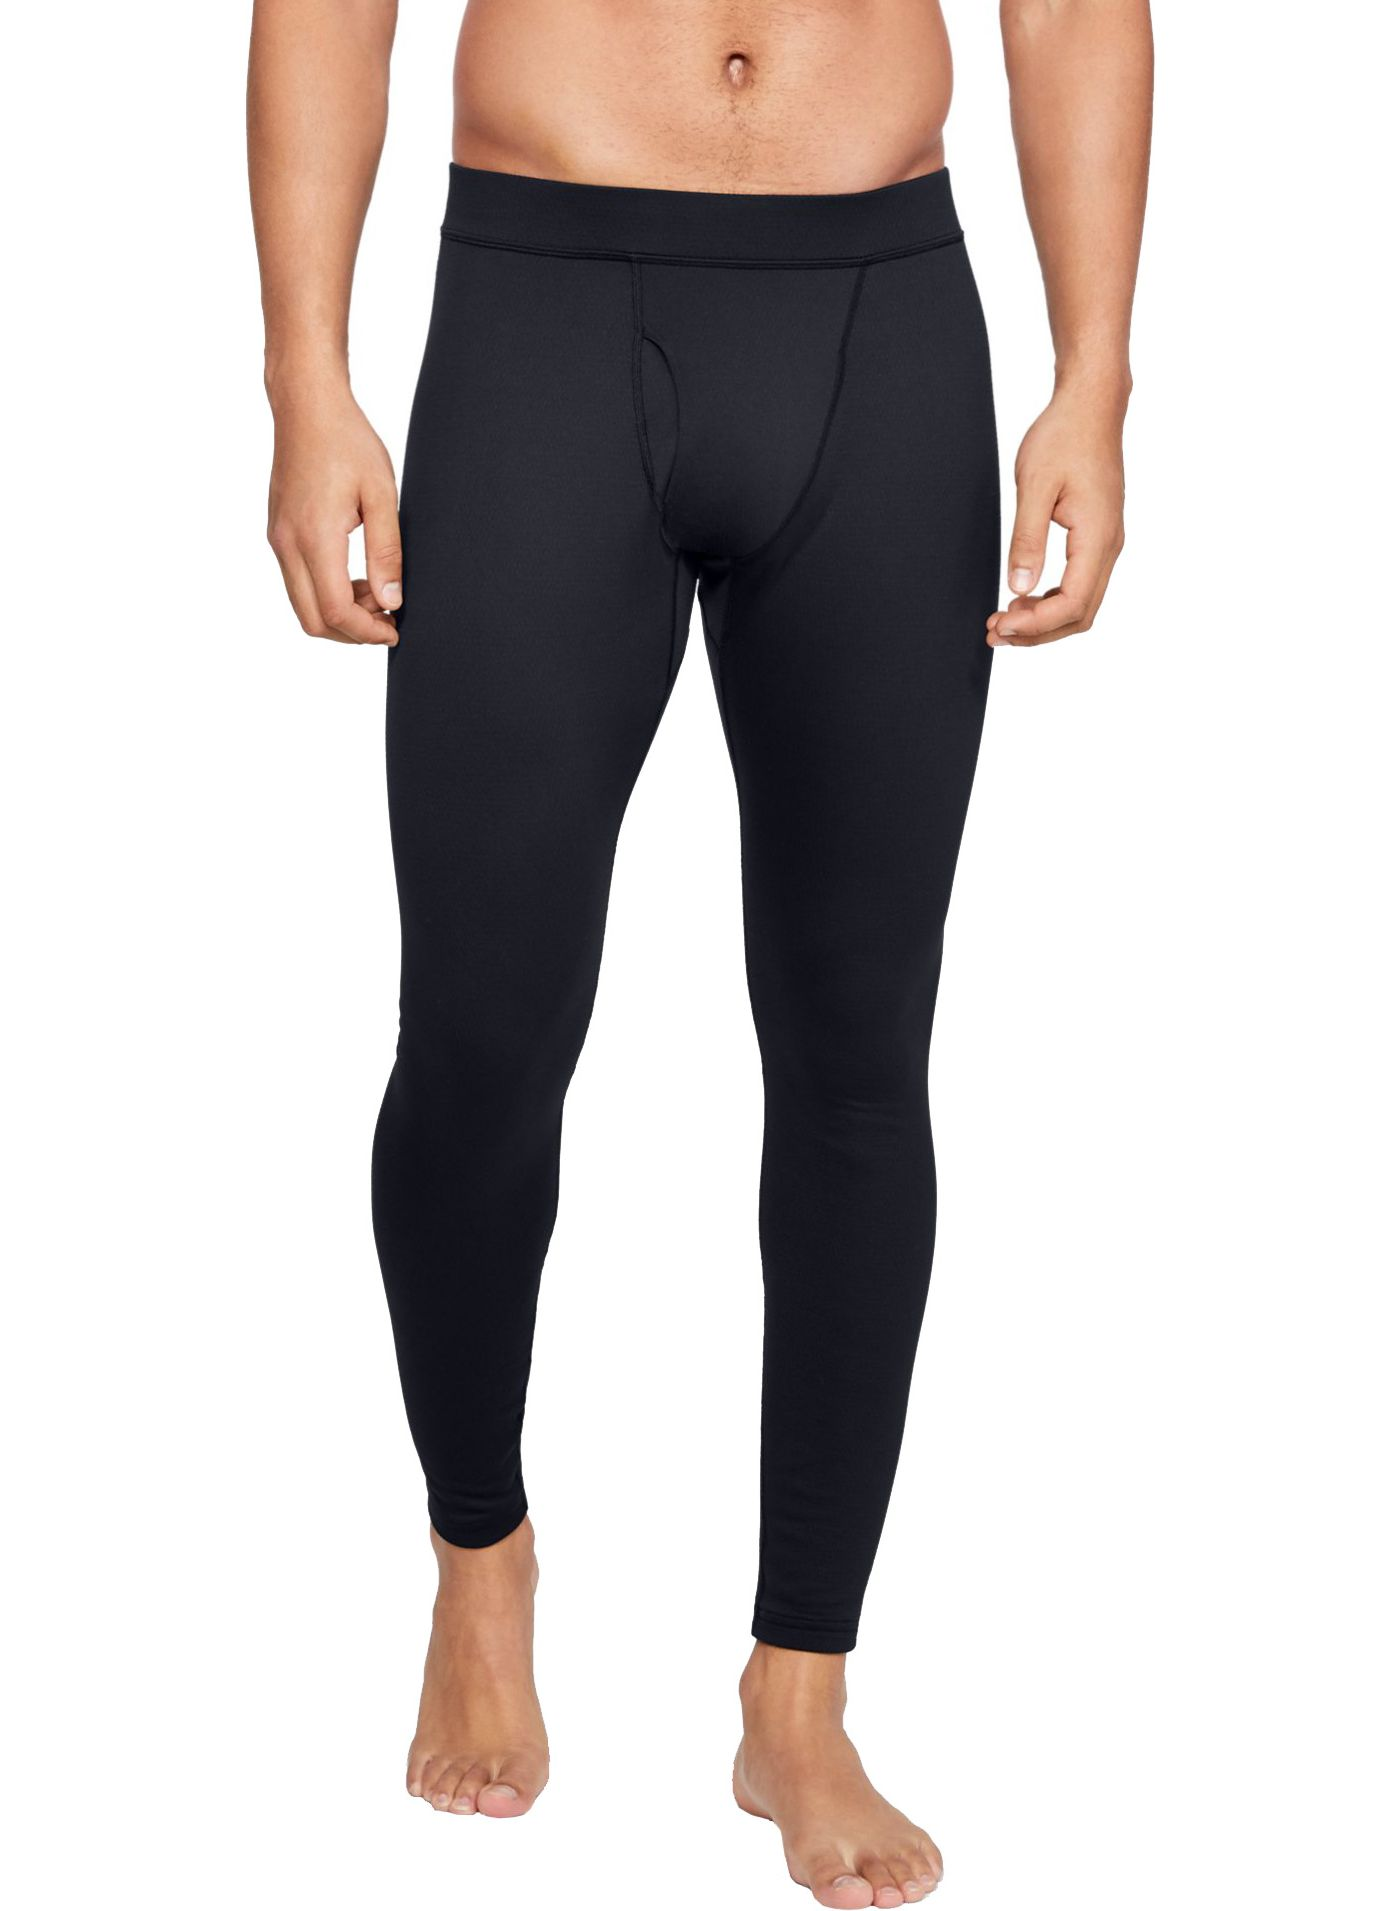 Under Armour Men's Packaged Base 3.0 Baselayer Leggings (Regular and Big & Tall)